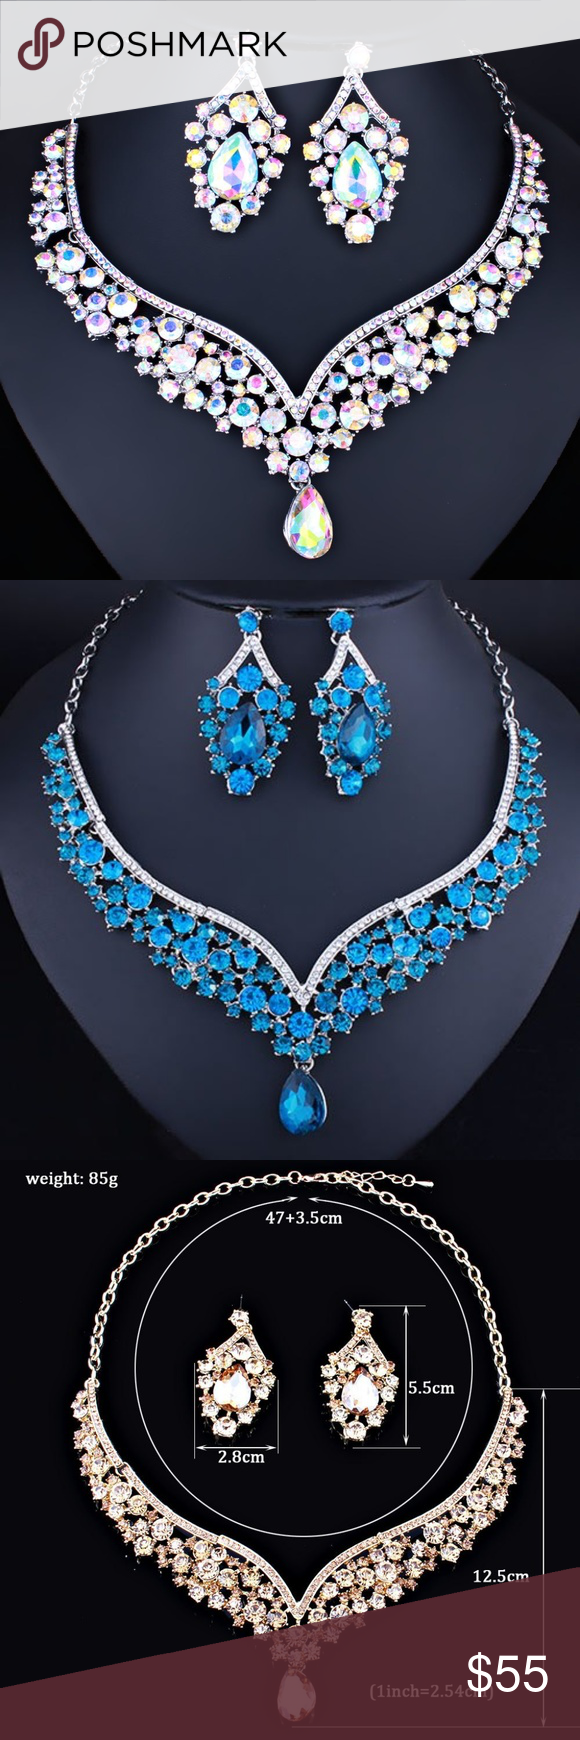 Photo of NS23 | Evening Glam Jewelry Prom Wedding Set Dainty Rhinestone Choker Necklace S …, #Choke …